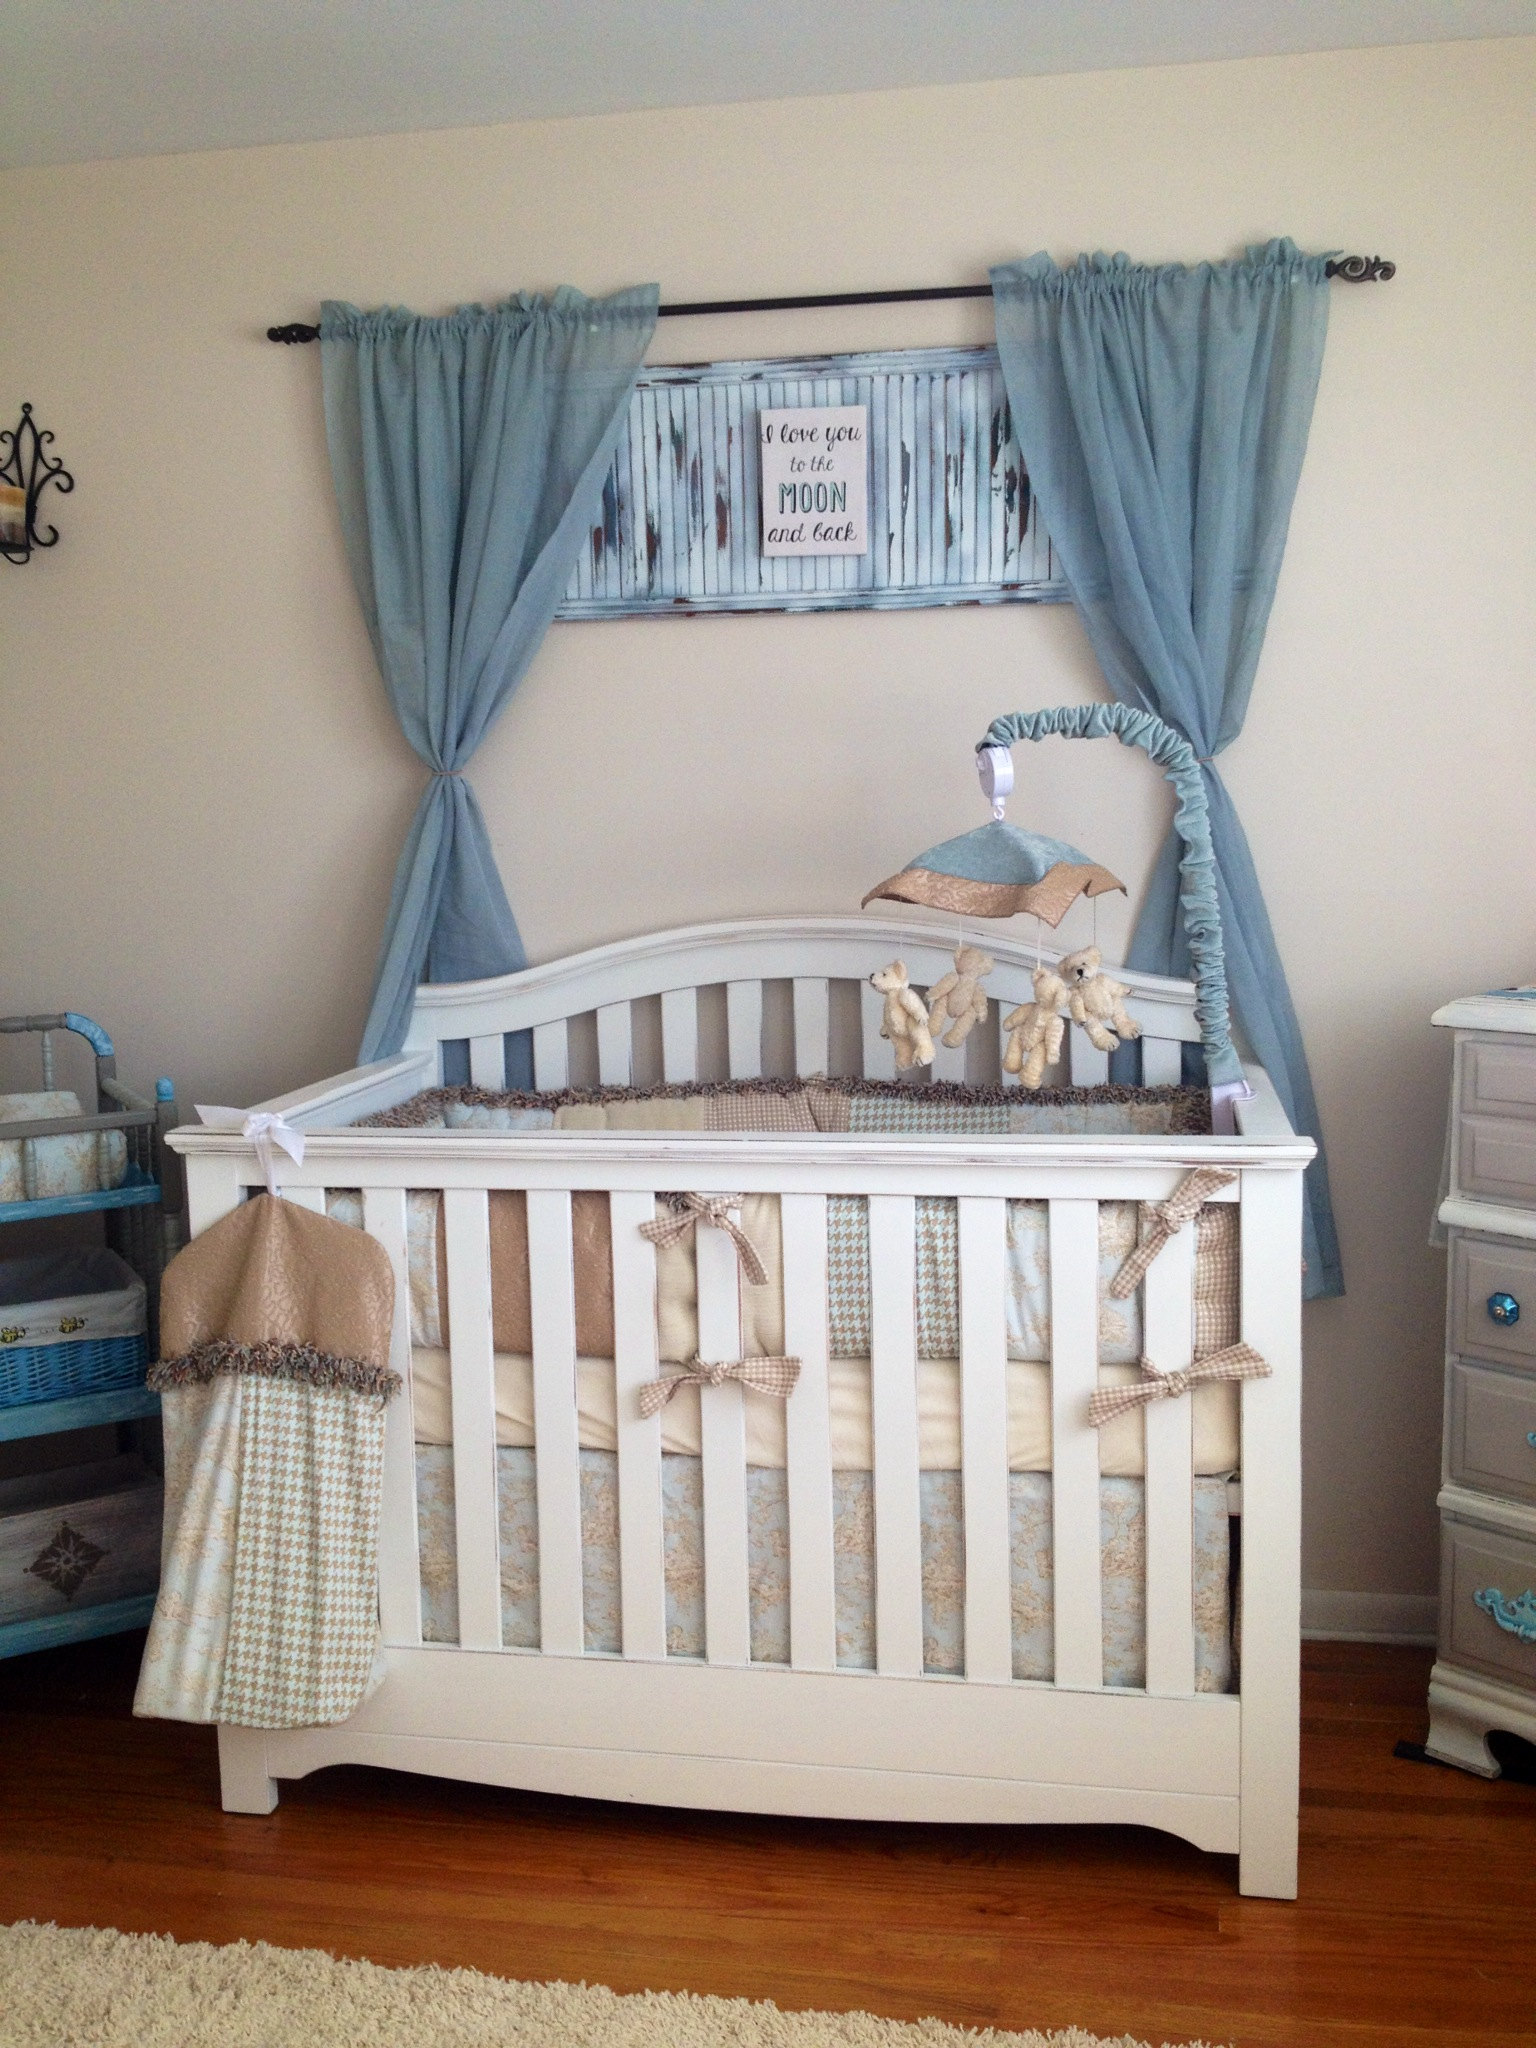 Crib for sale craigslist - After The Crib I Set Out To Find Either A Nice Used Bassinet Or A Cradle I Found A Gorgeous White Jenny Lind Style Rocking Cradle On Craigslist With